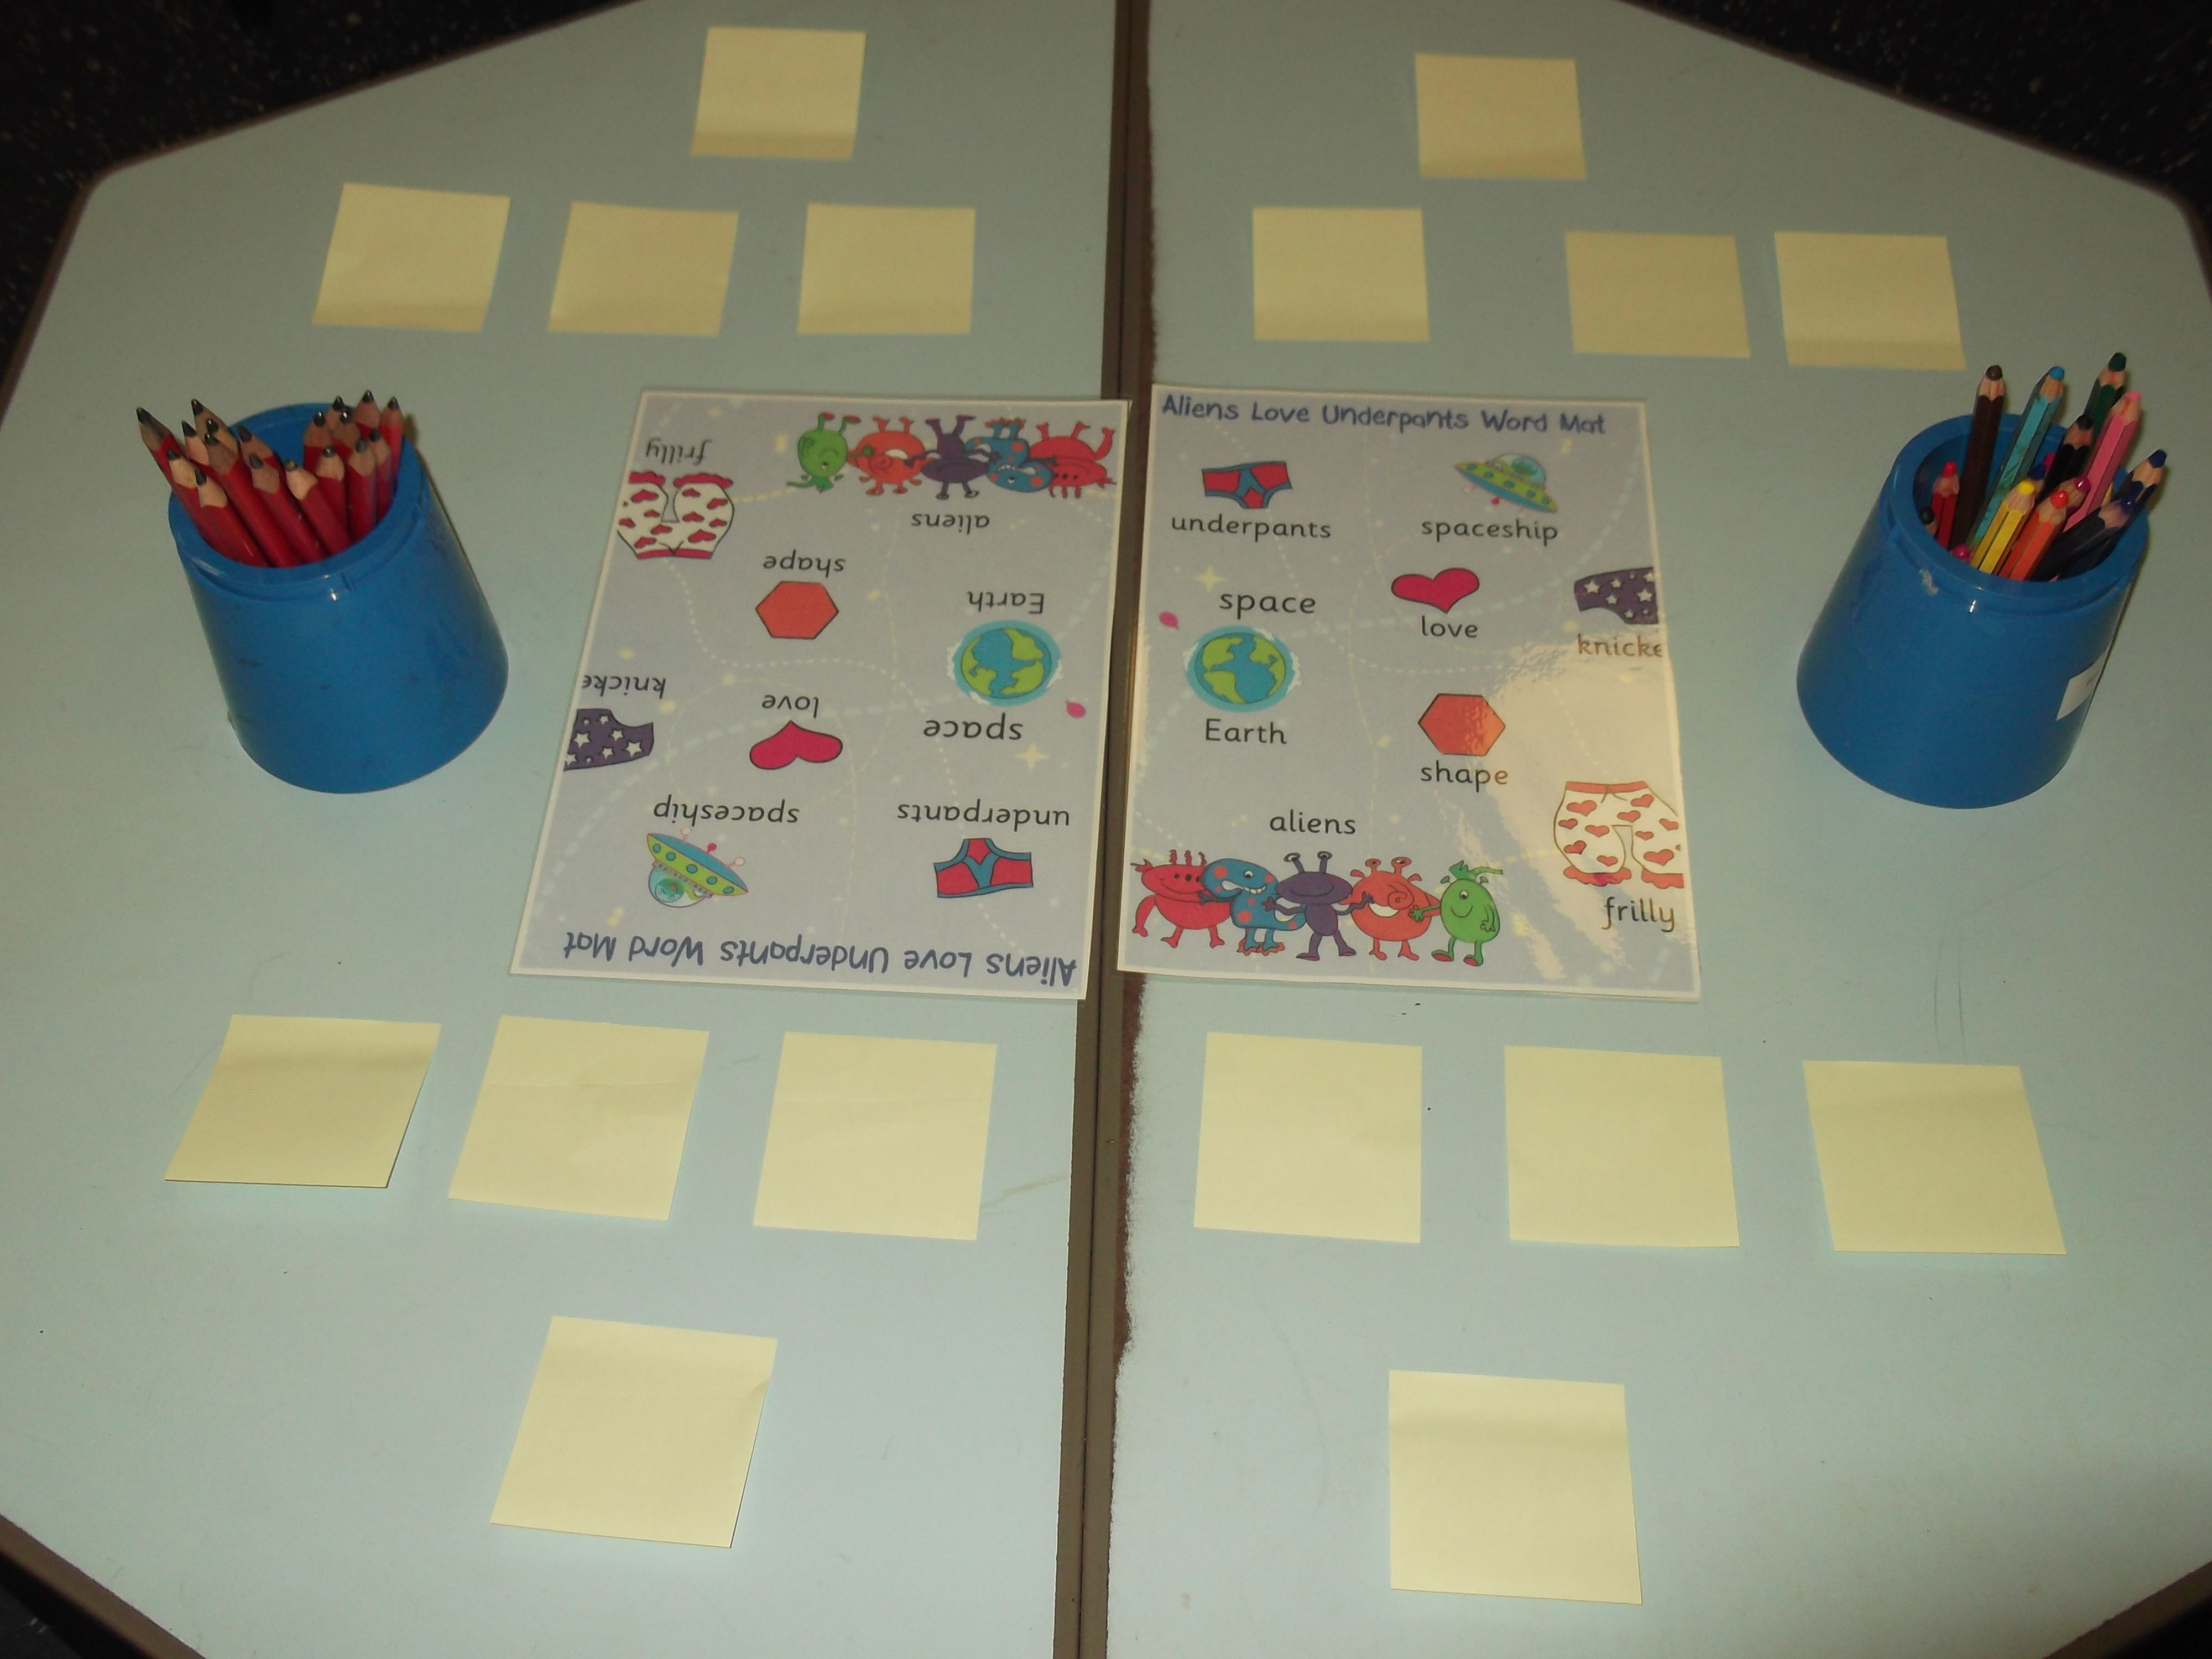 Aliens Love Underpants Word Mats Cover Table With Post It Notes